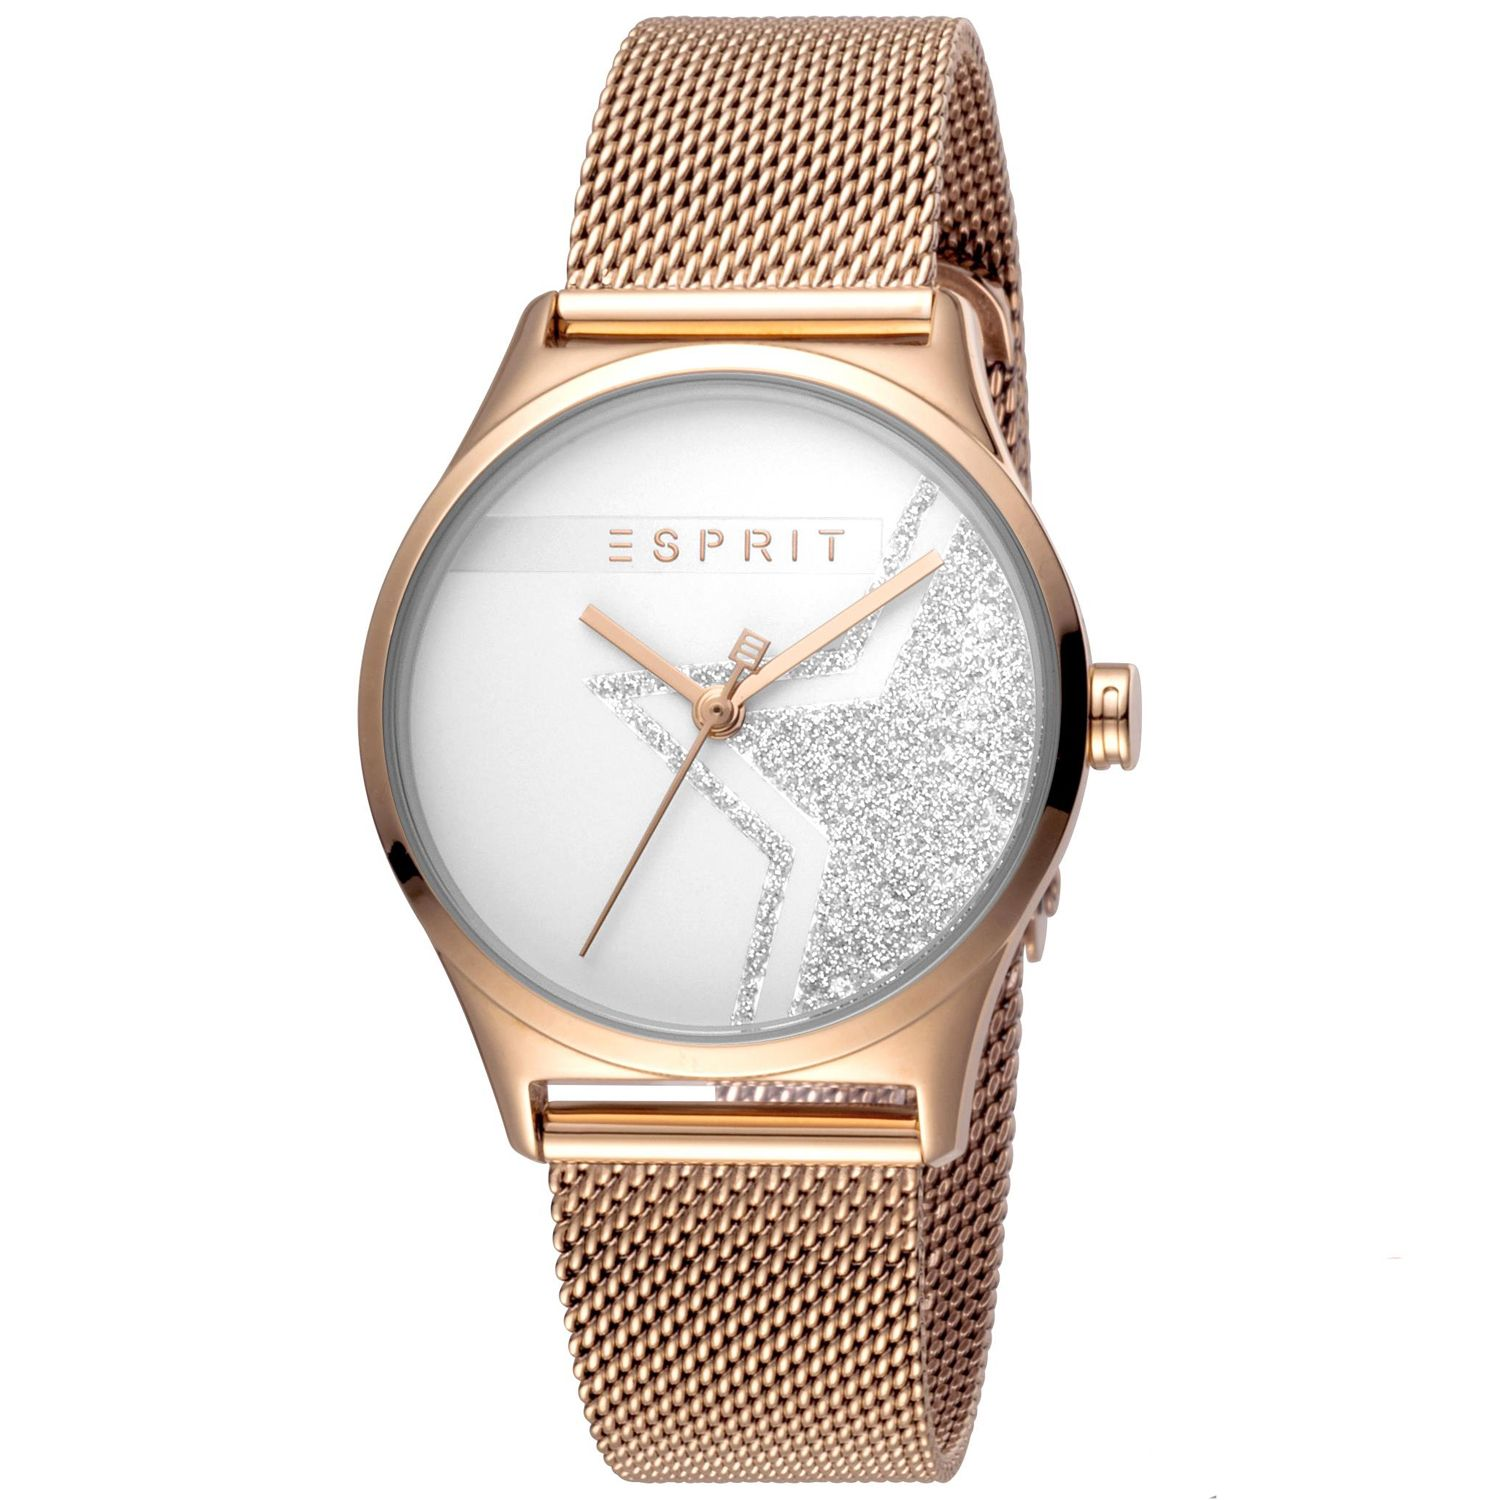 Esprit Watch ES1L034M0285 Gift Set Bracelet Women Rose Gold